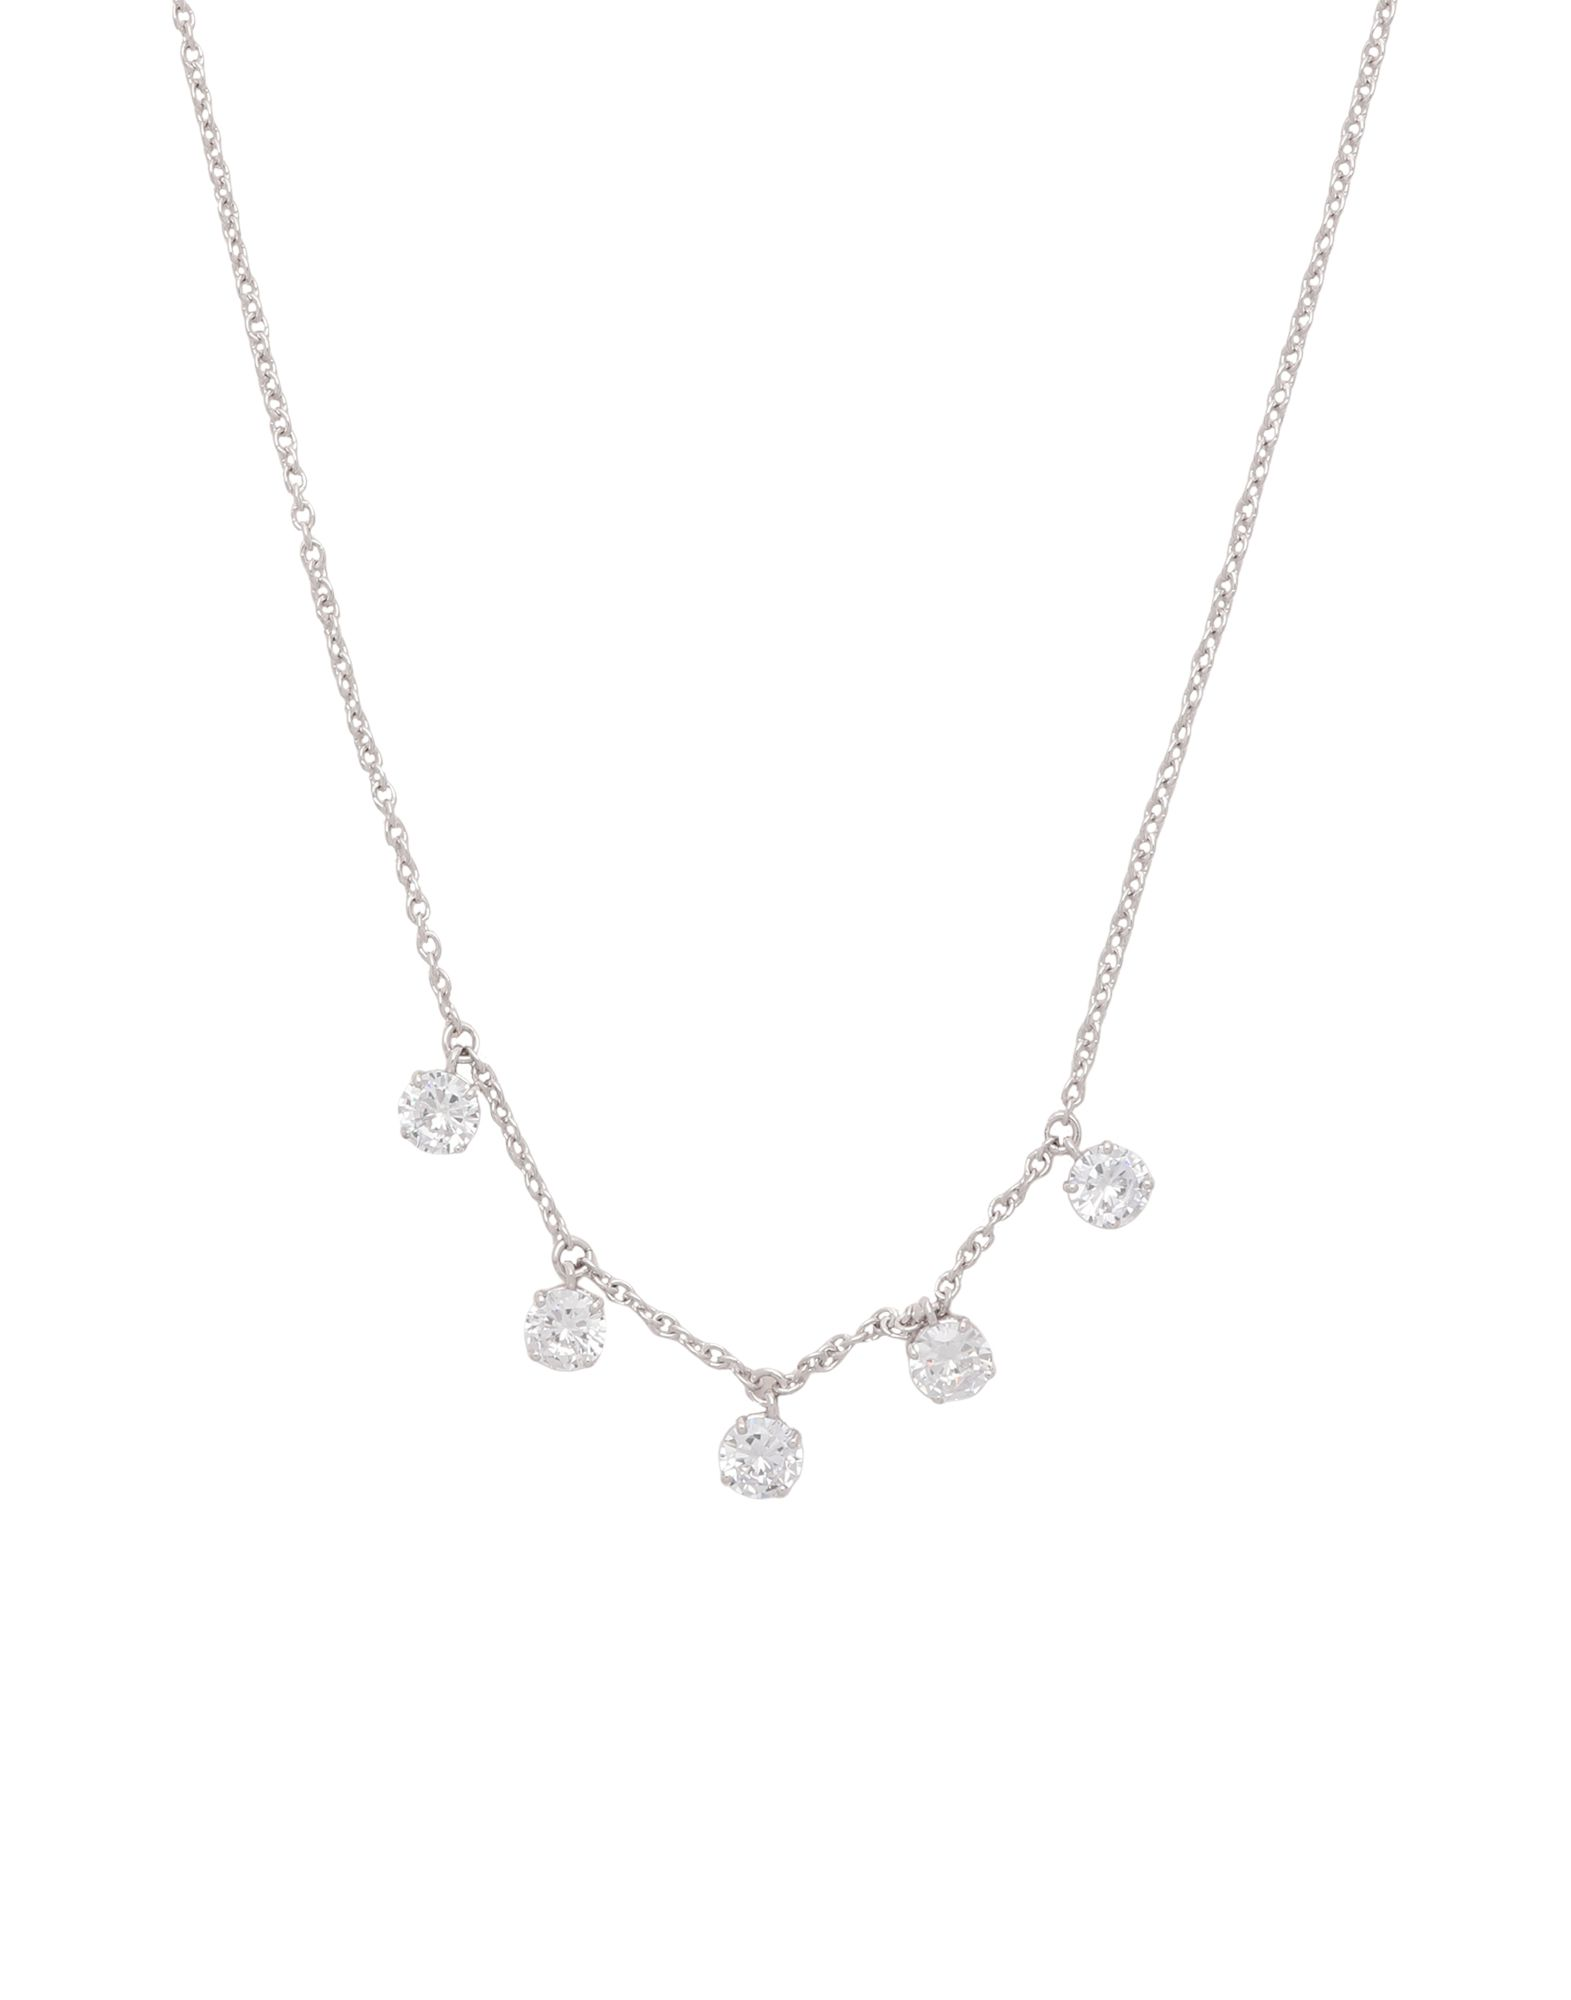 FIRST PEOPLE FIRST レディース ネックレス COLLANA SPARKLING シルバー